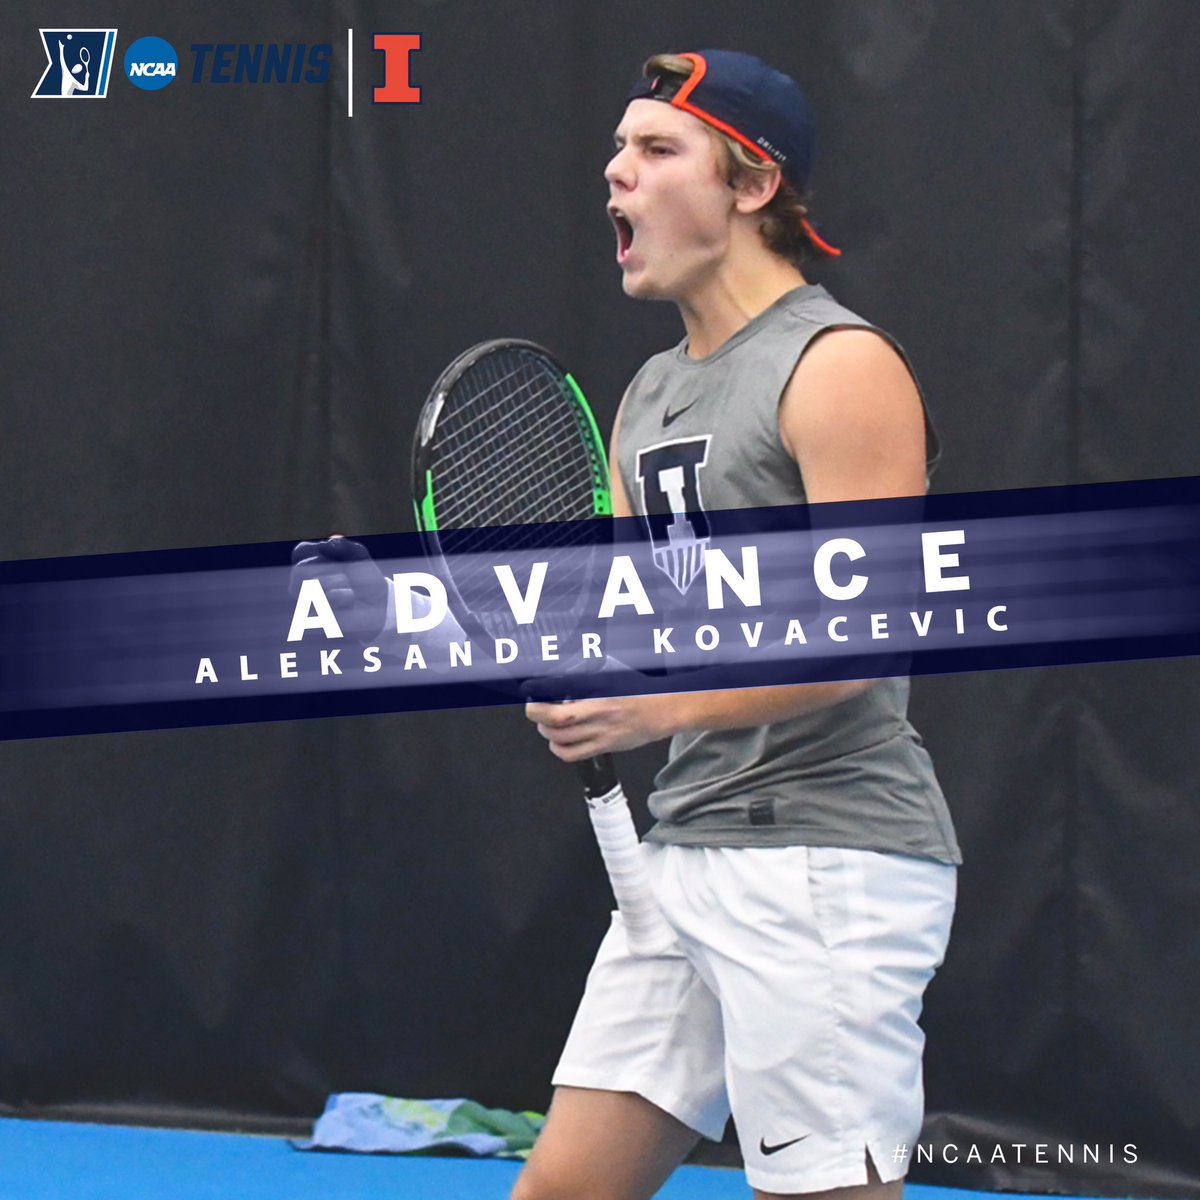 On to the Semifinals!  Congrats to Aleksander Kovacevic of @IlliniMTennis on winning his @NCAATennis Singles Quarterfinal match, 6-7, 7-6, 6-3. #B1GMTennis